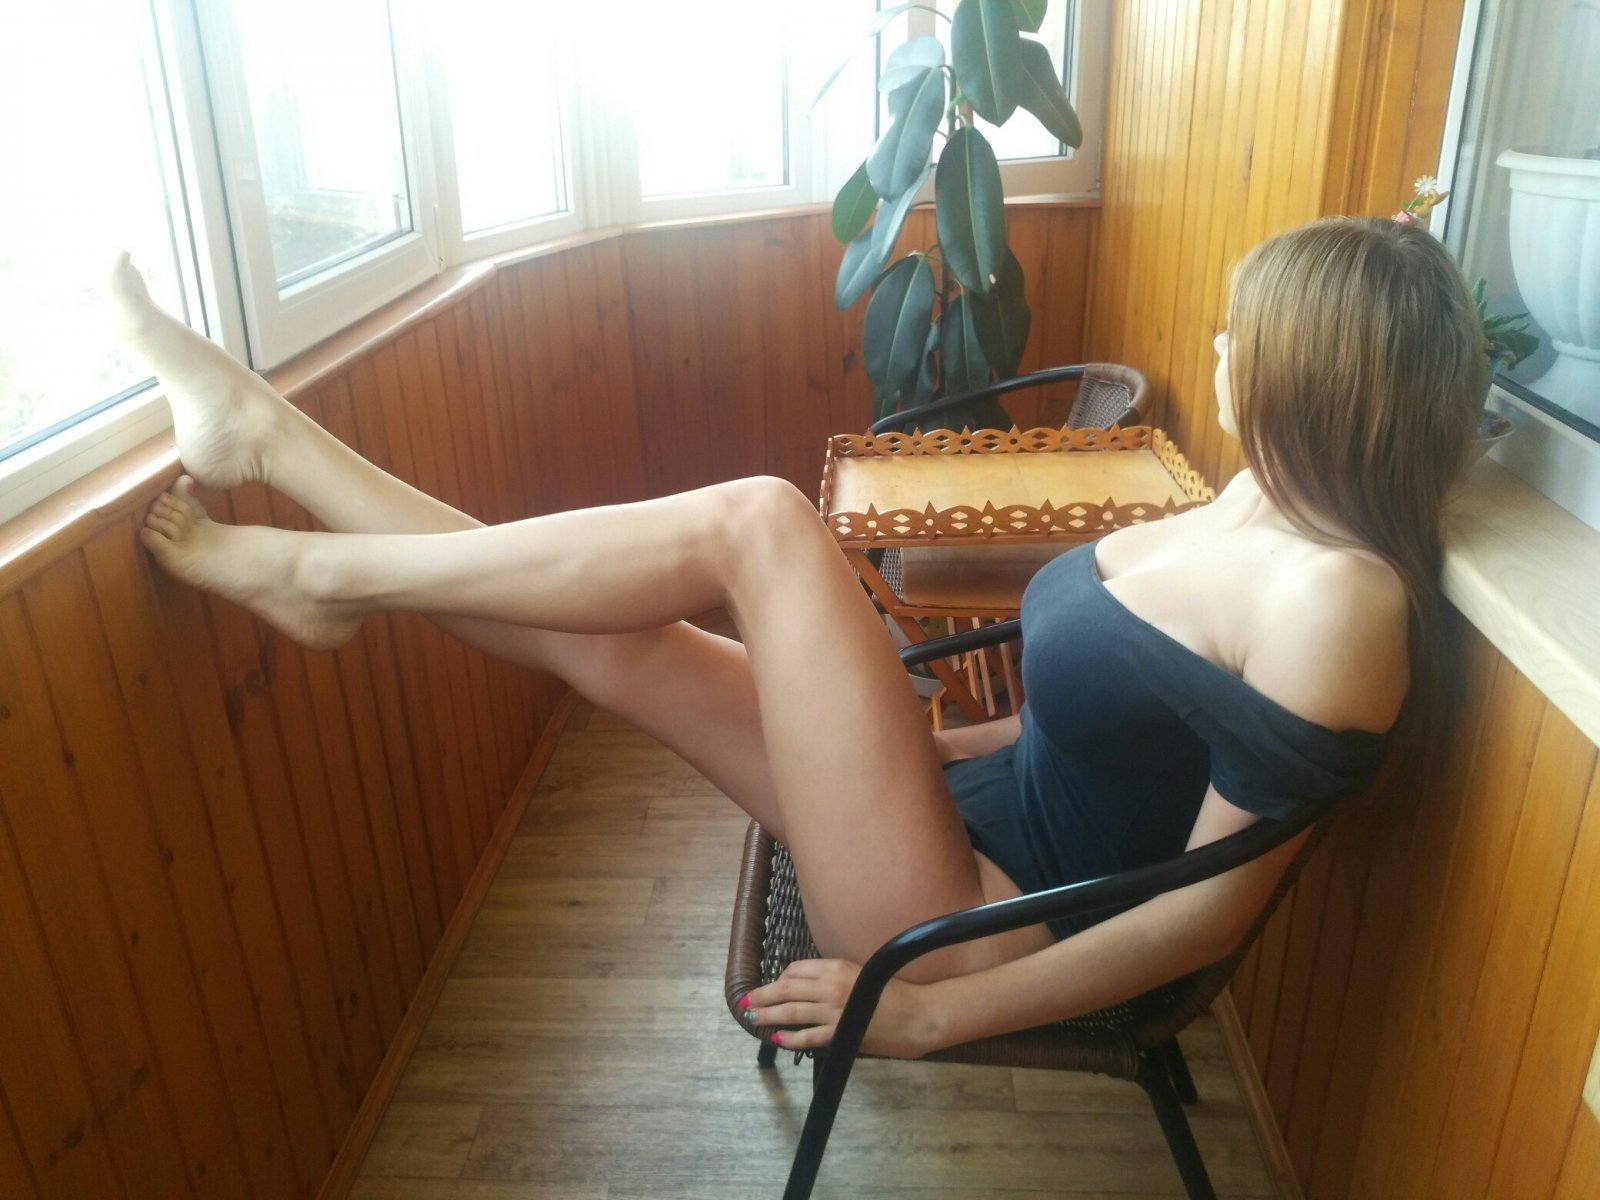 Miss_Milana striptease